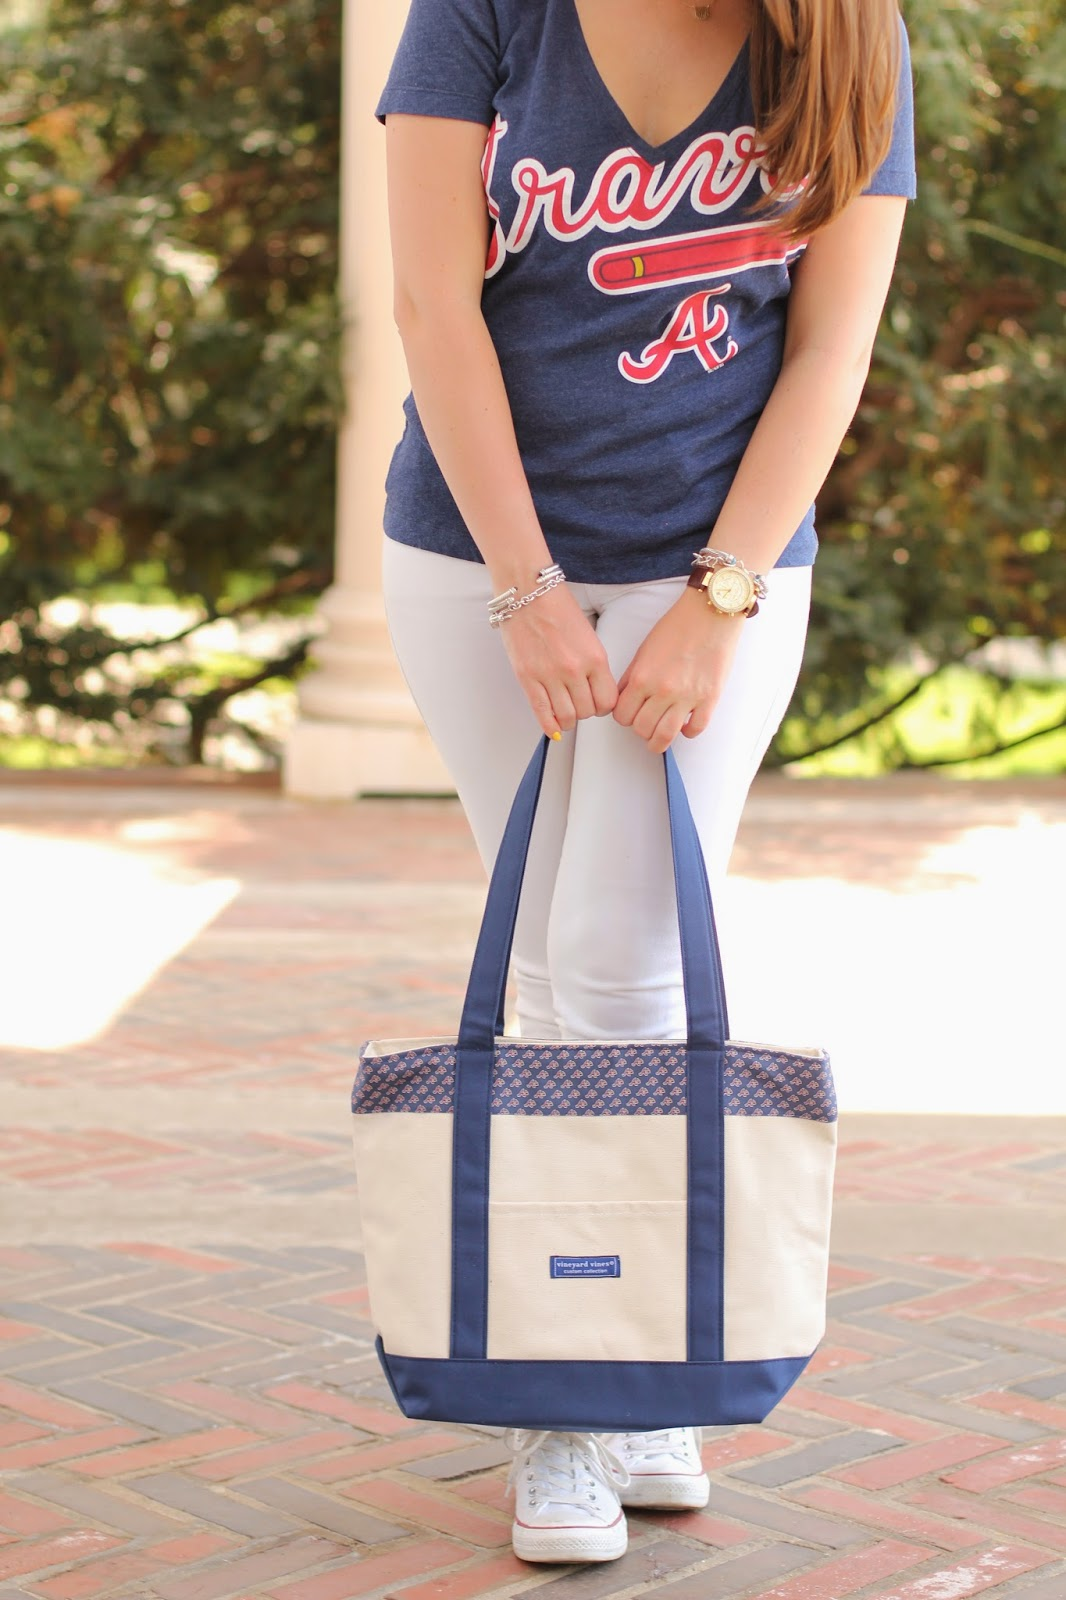 braves tote, cute braves clothing, braves tote bag